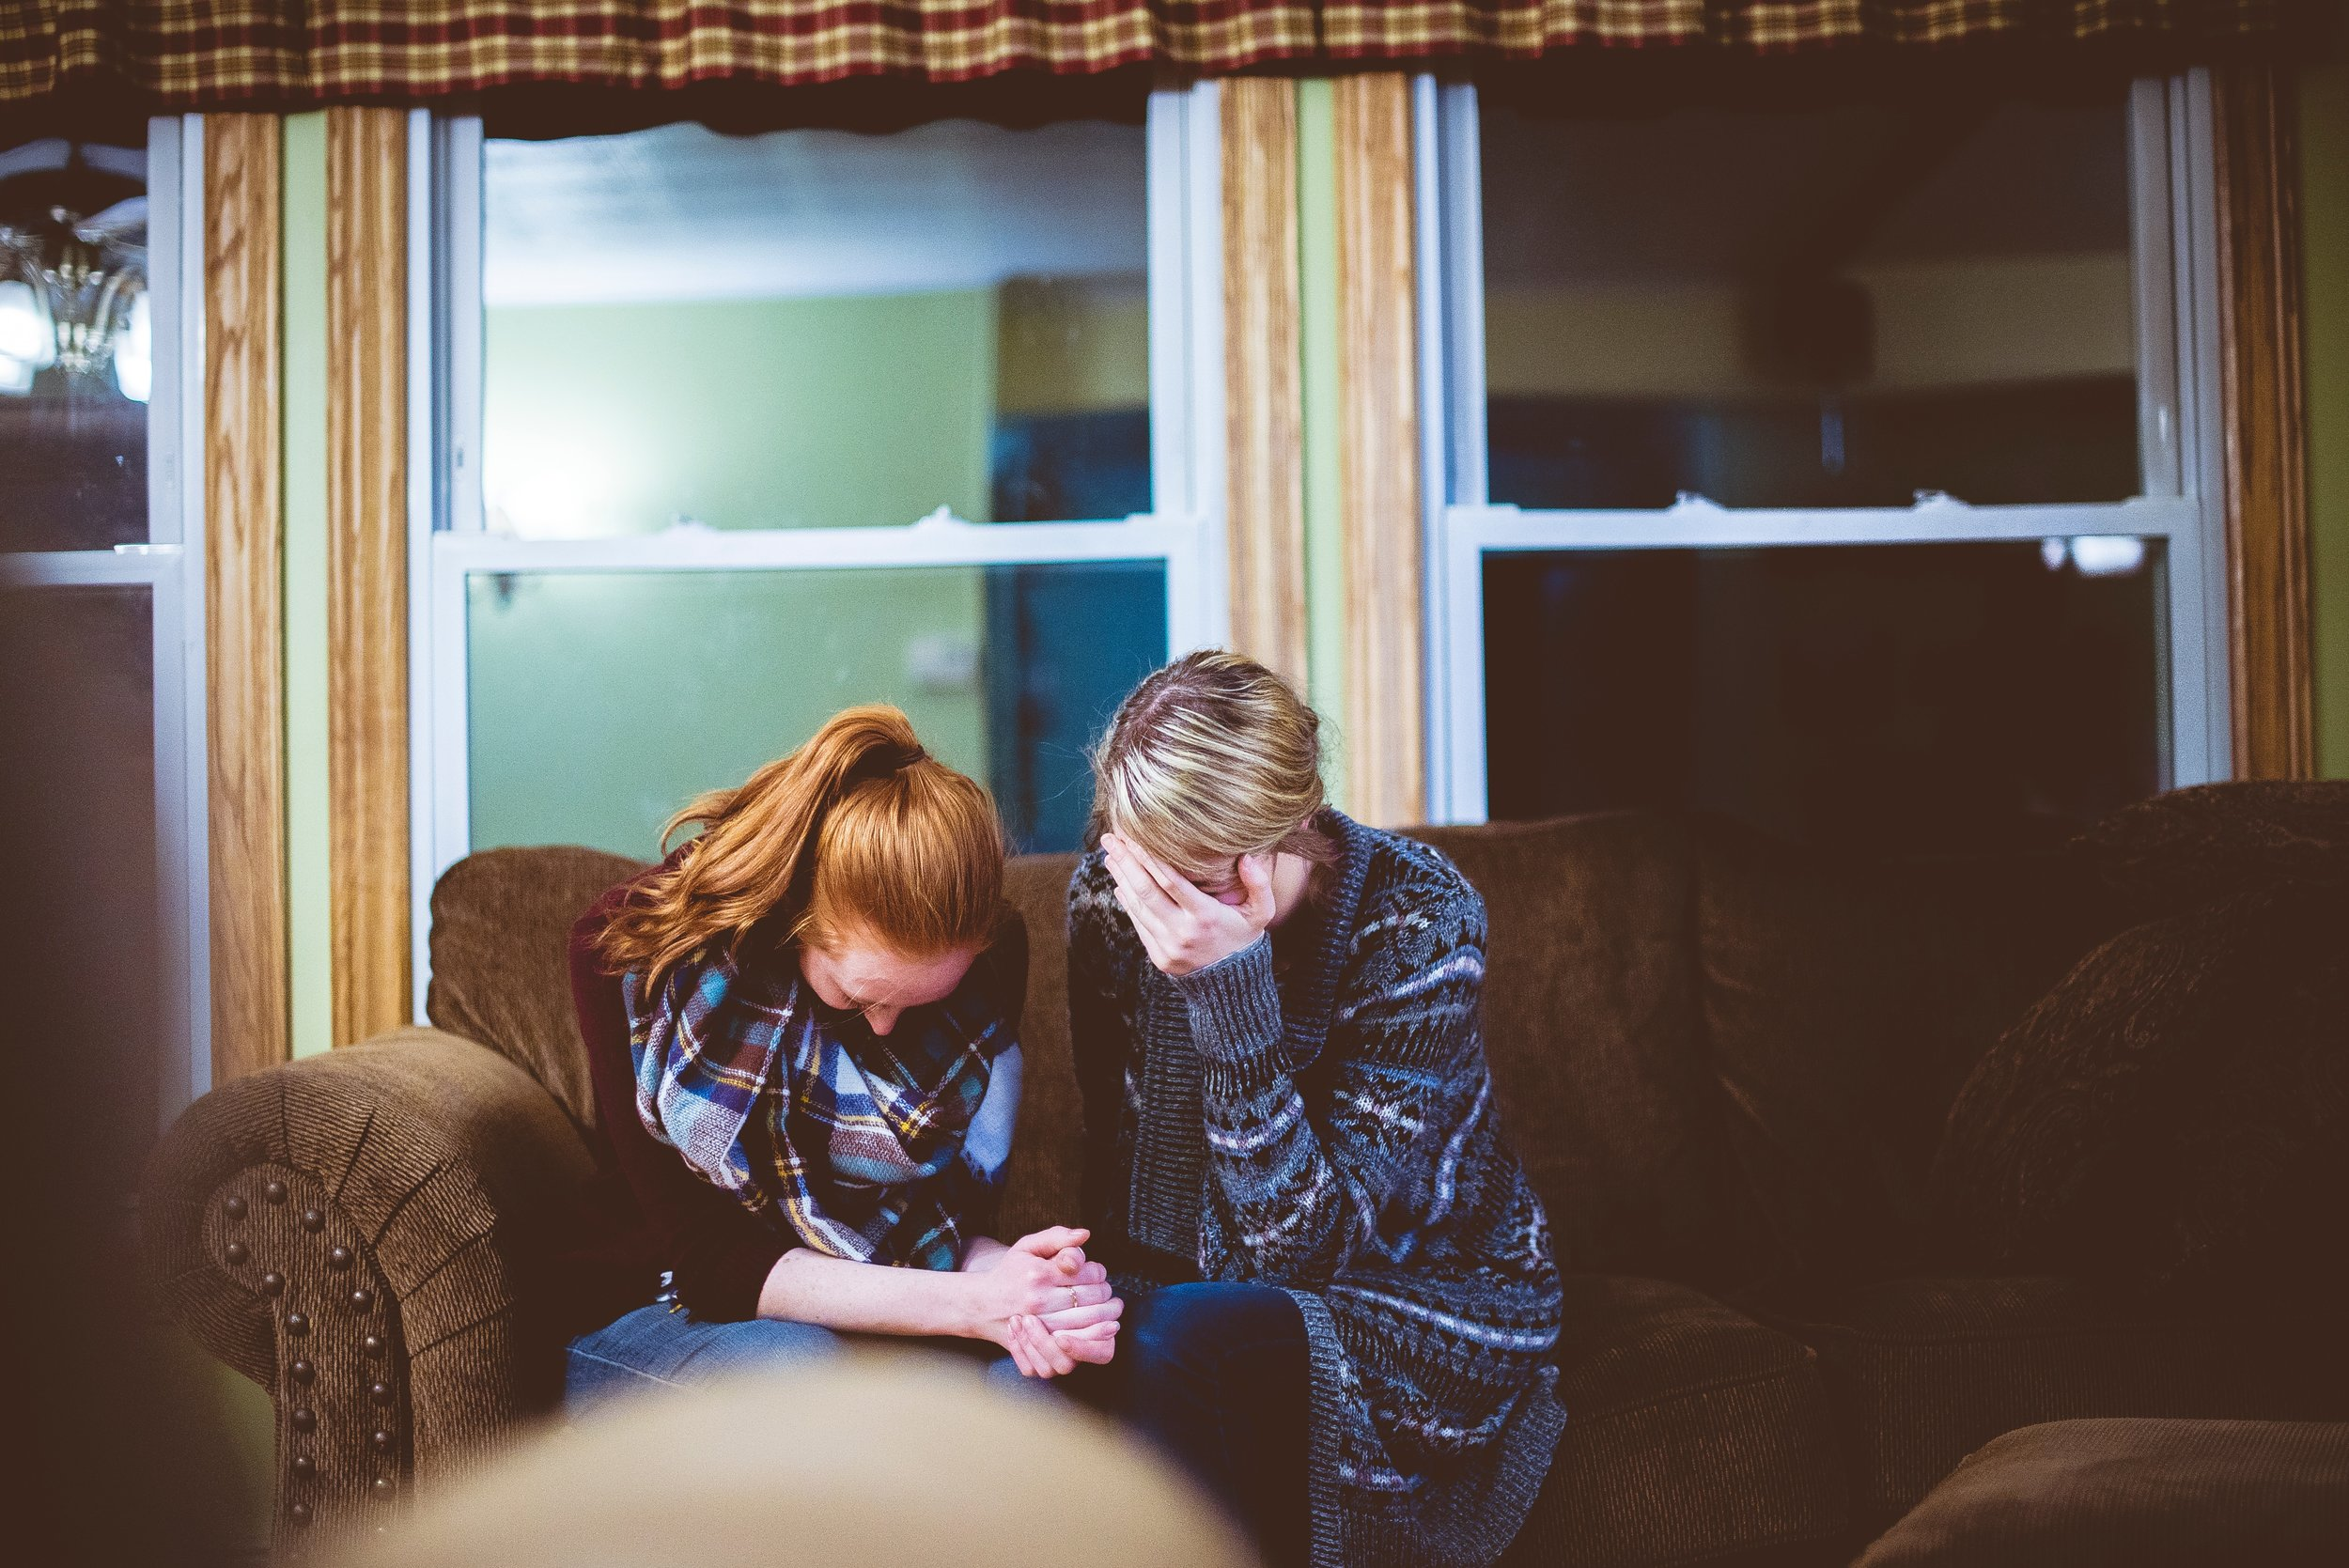 therapy counseling couples trauma relationships san jose